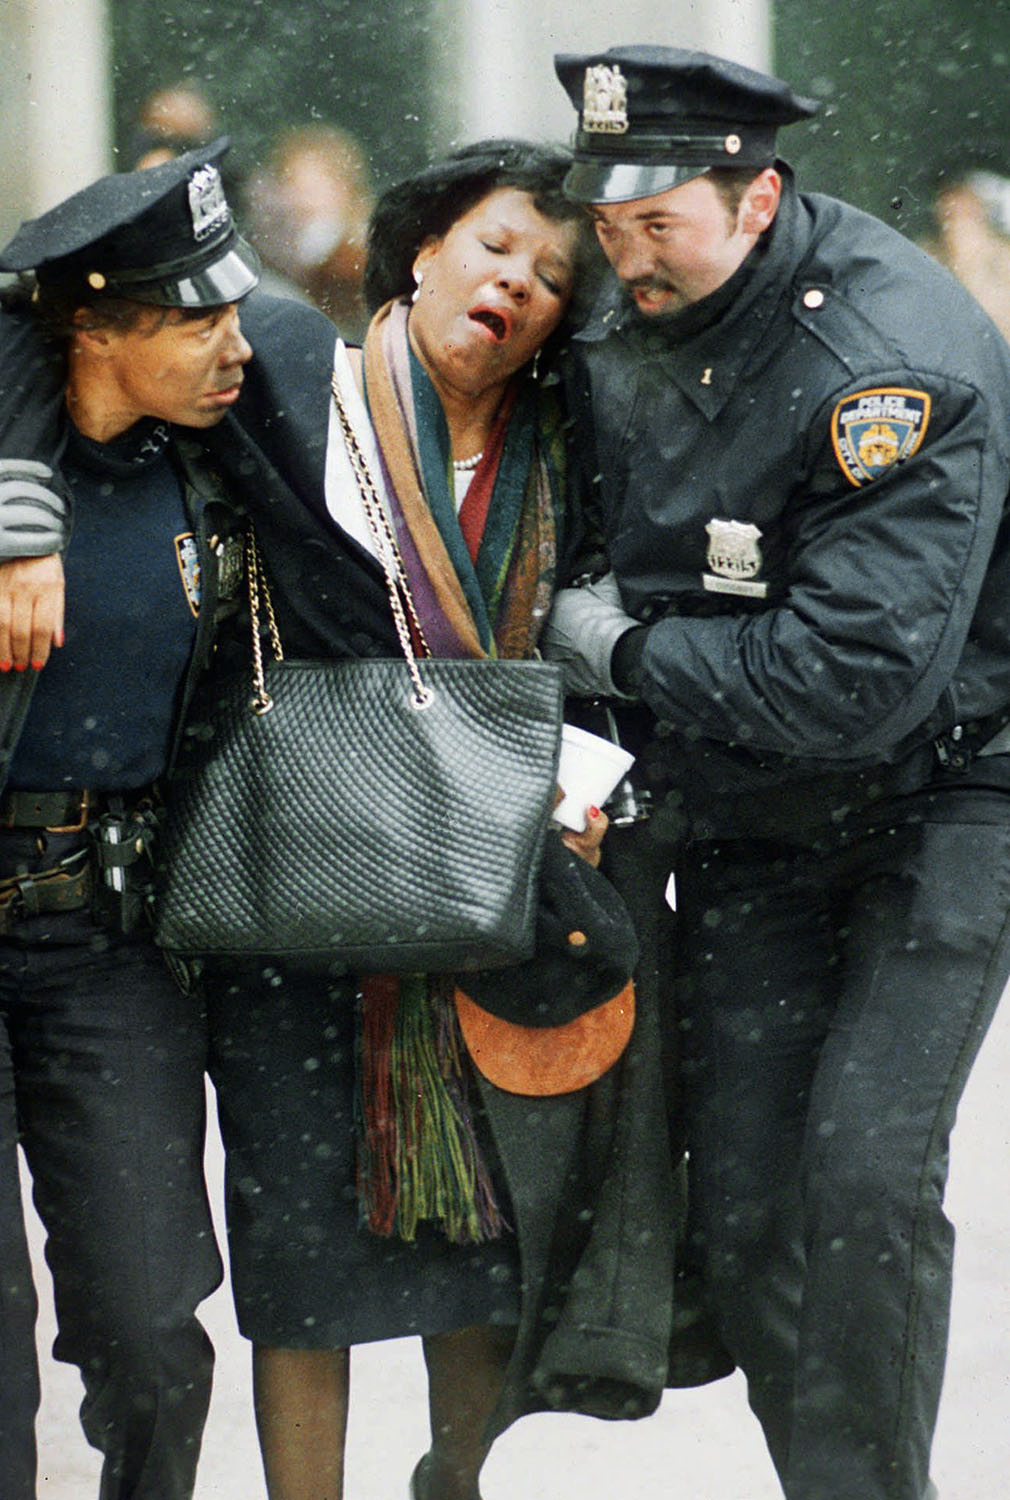 <div class='meta'><div class='origin-logo' data-origin='AP'></div><span class='caption-text' data-credit='AP Photo/Joe Tabacca'>Two New York City police officers help an injured women away from the scene of the World Trade Center explosion.</span></div>